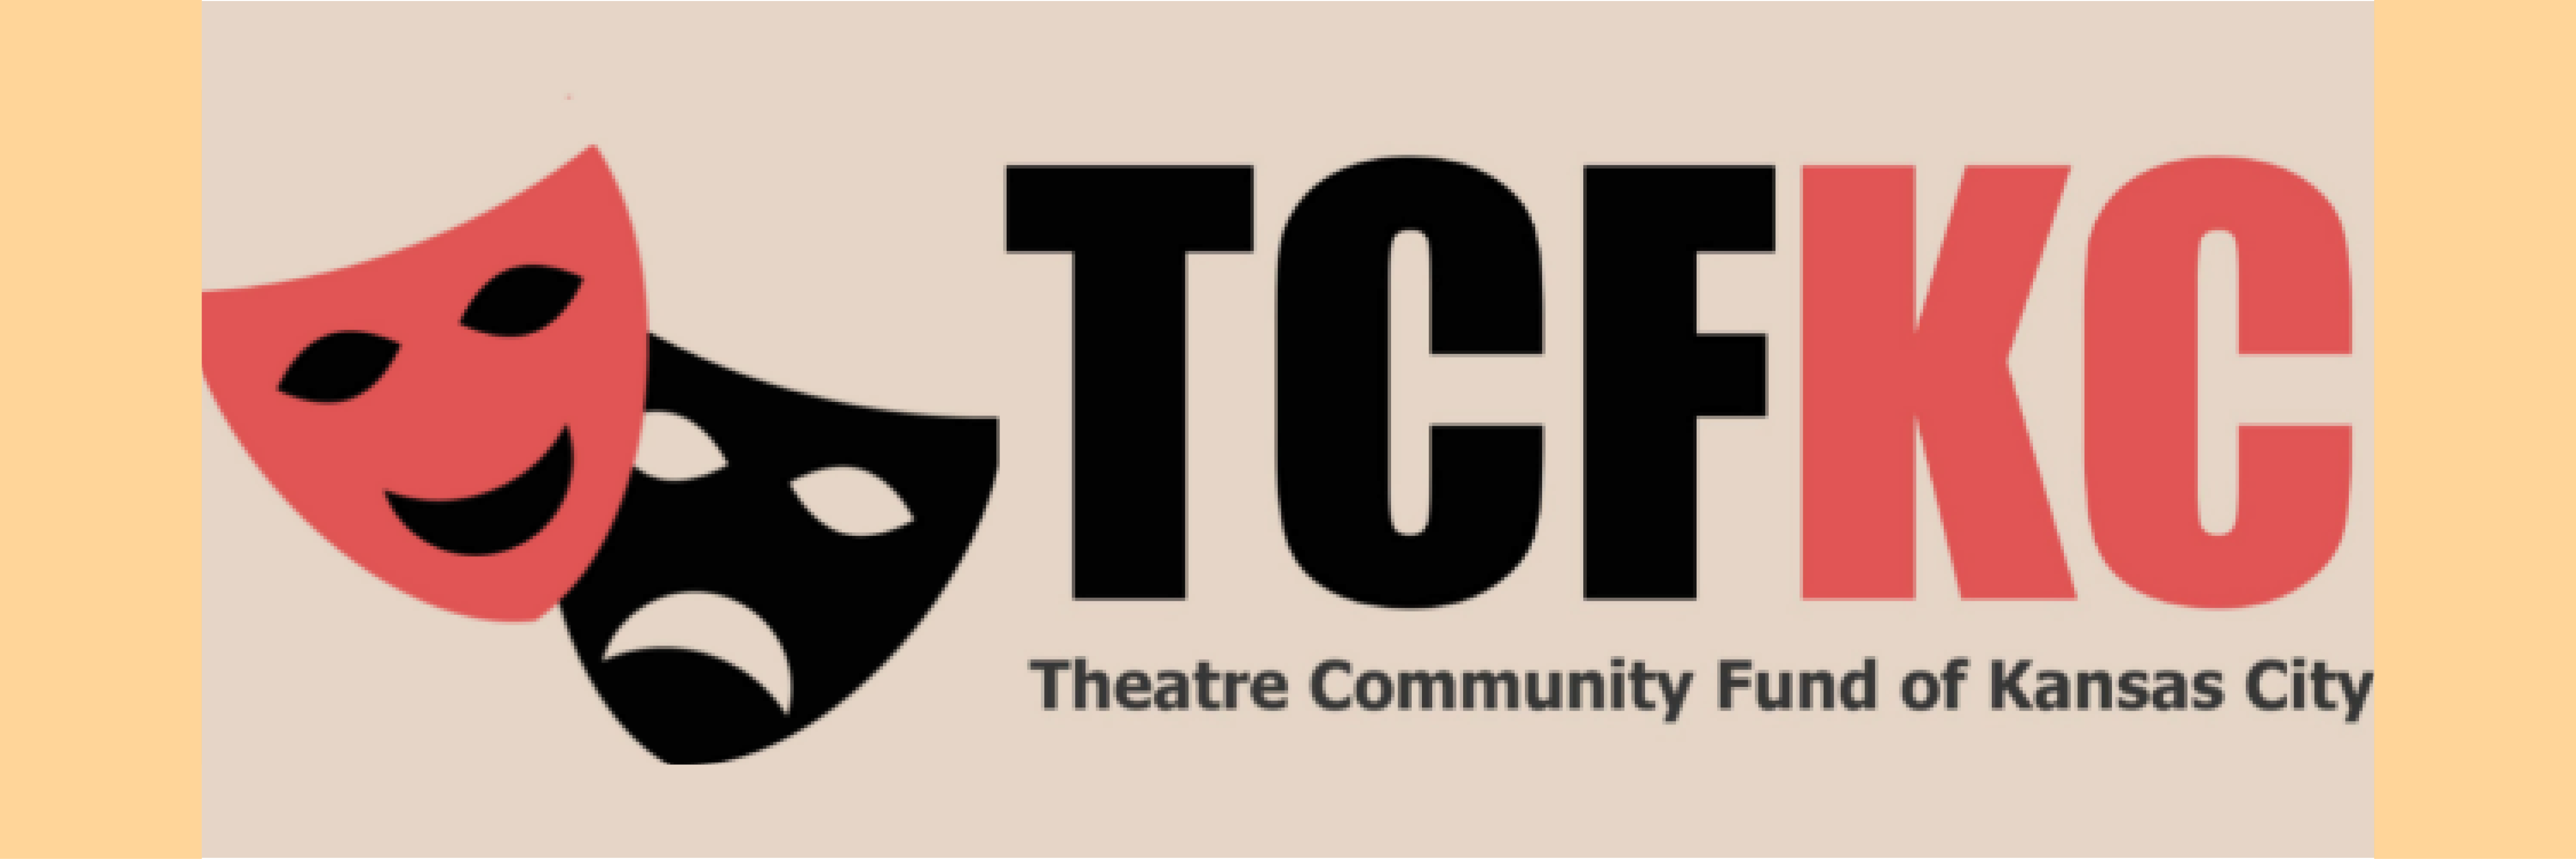 Theatre Community Fund of KC_Banner Image